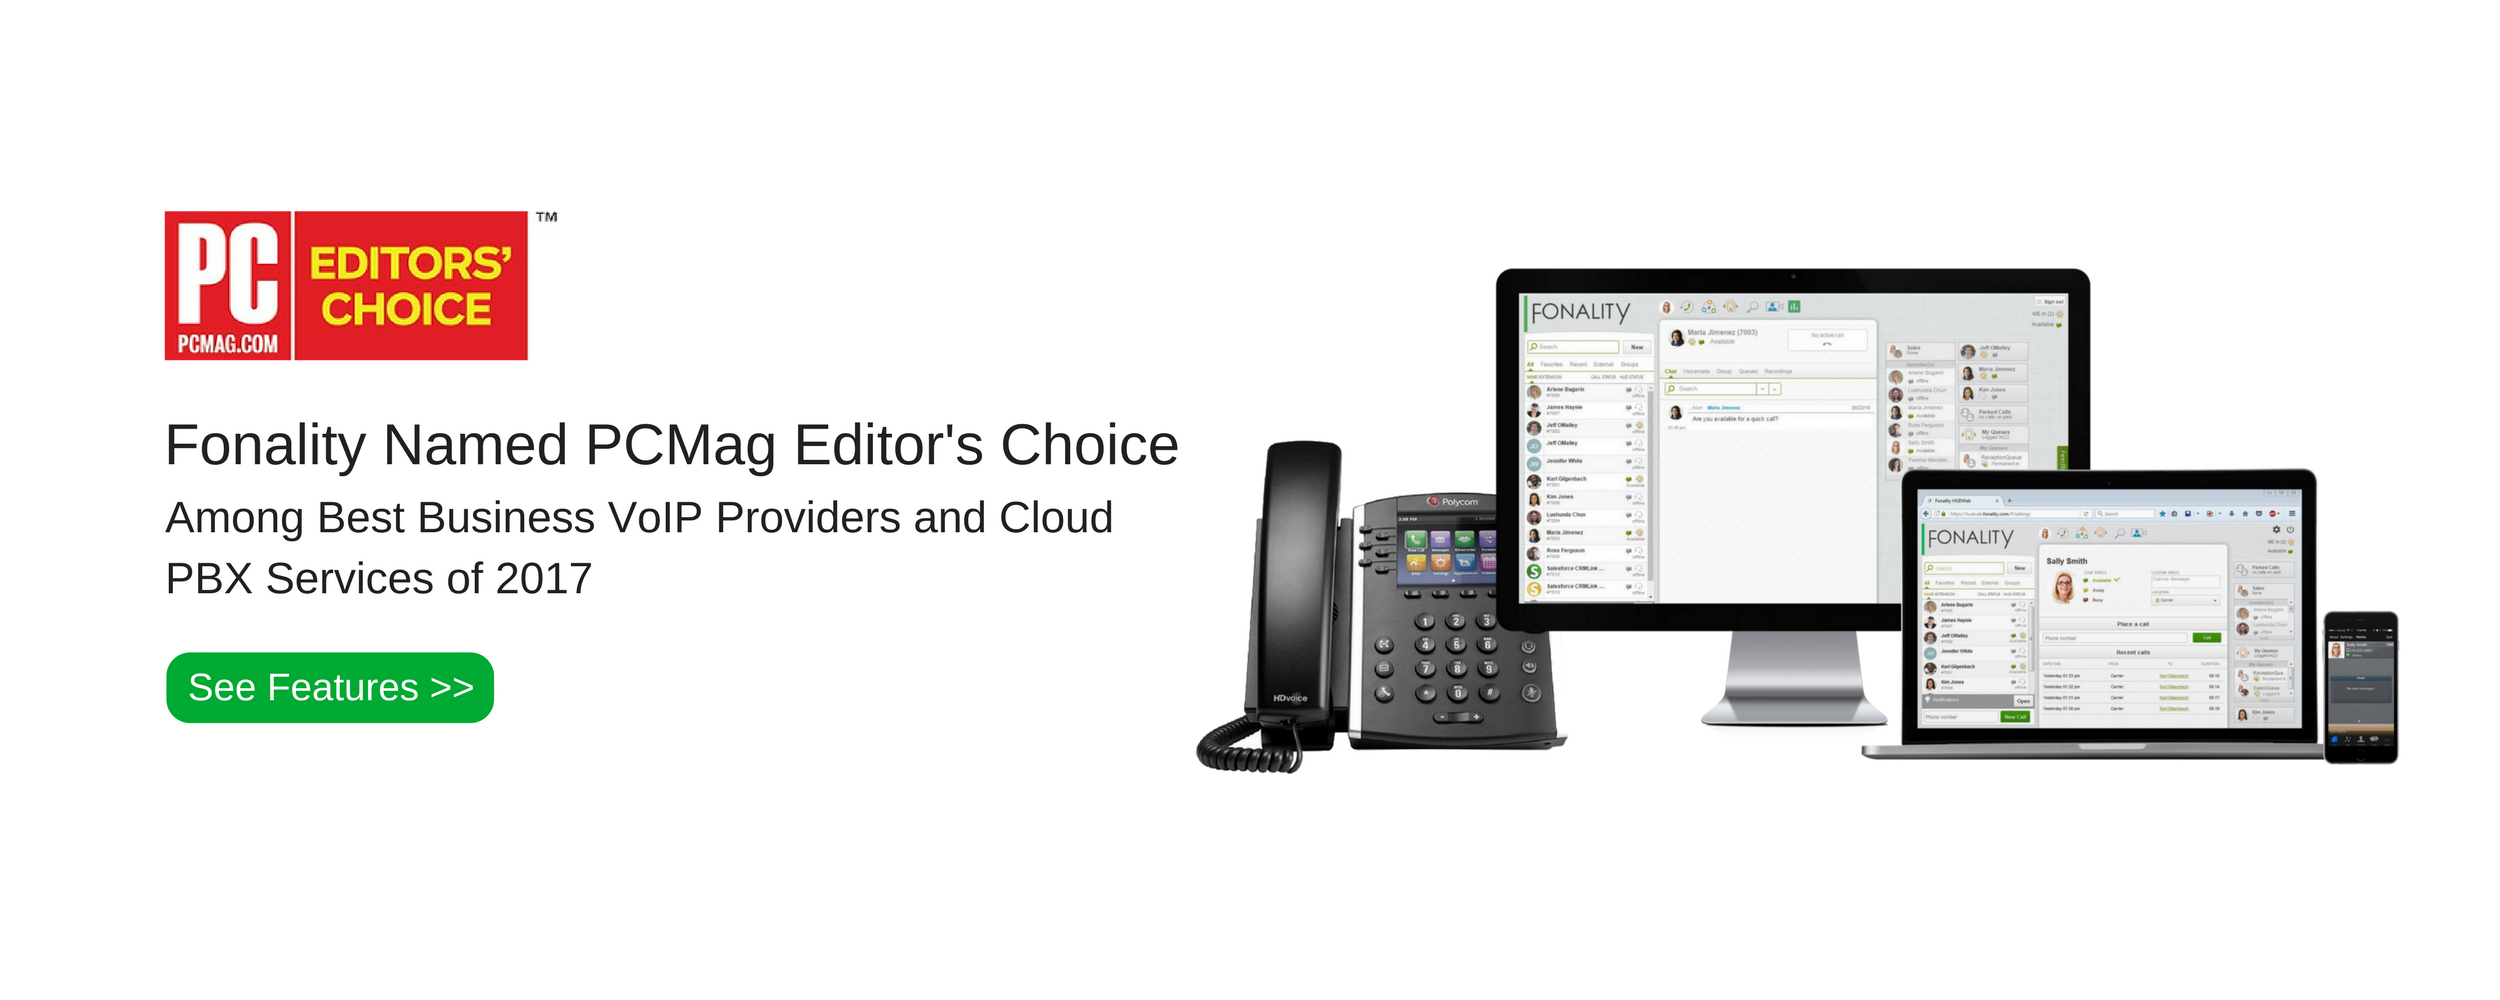 Fonality Named PCMag Editor's Choice